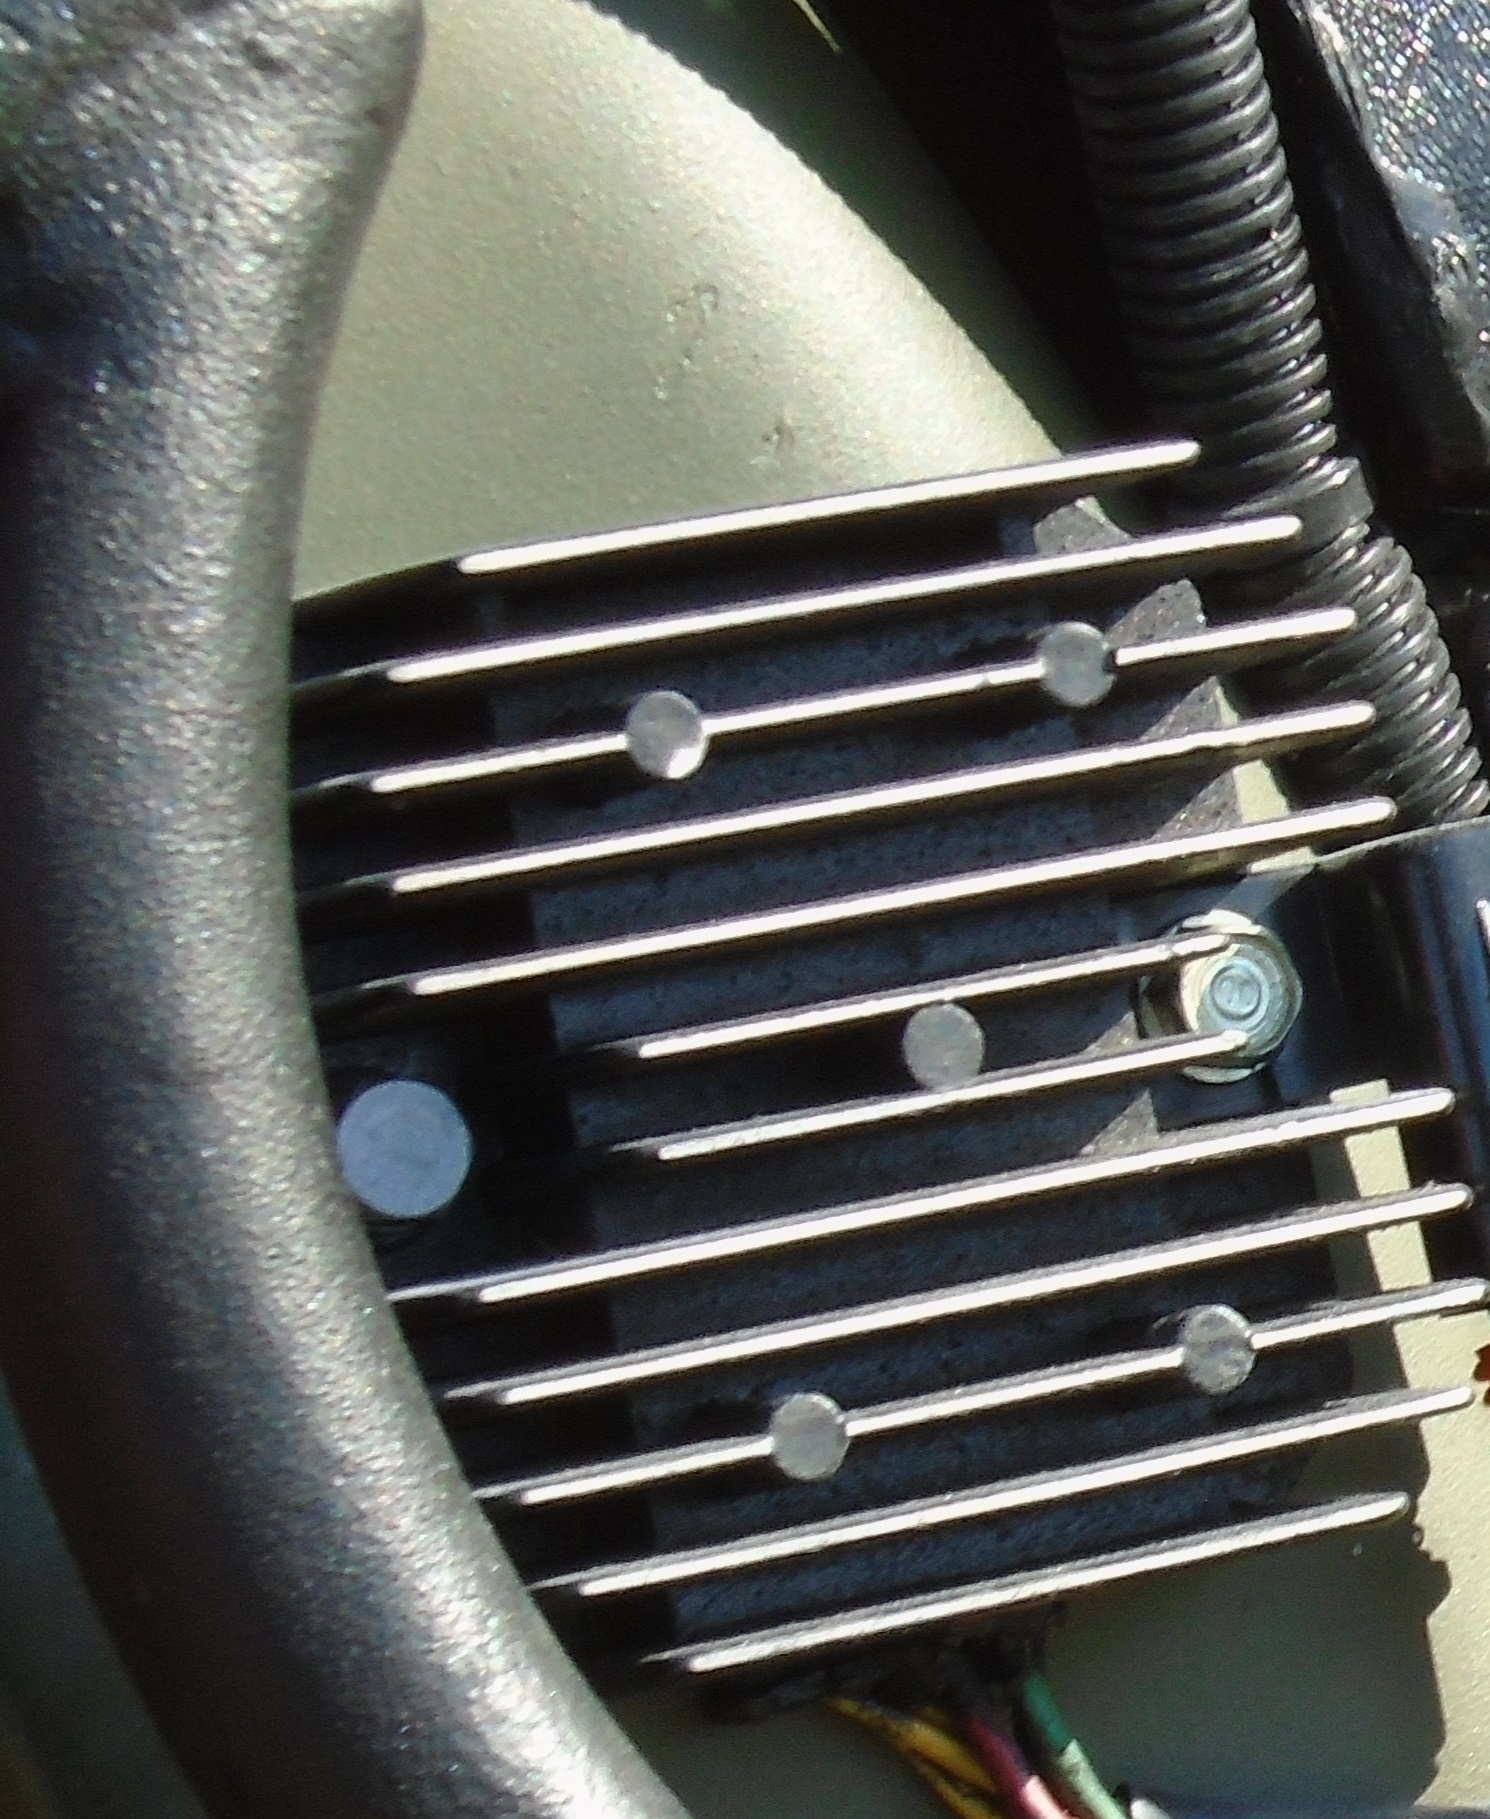 Bobber Archives Motopsycos Asylum Crazy About Motorcycles Electrical Wiring Diagram Of Honda Cm400a A Little While Back I Did Post On Twin Leading Shoe Brakes And Here They Are Installed Working Just Fine The Front This Cm400